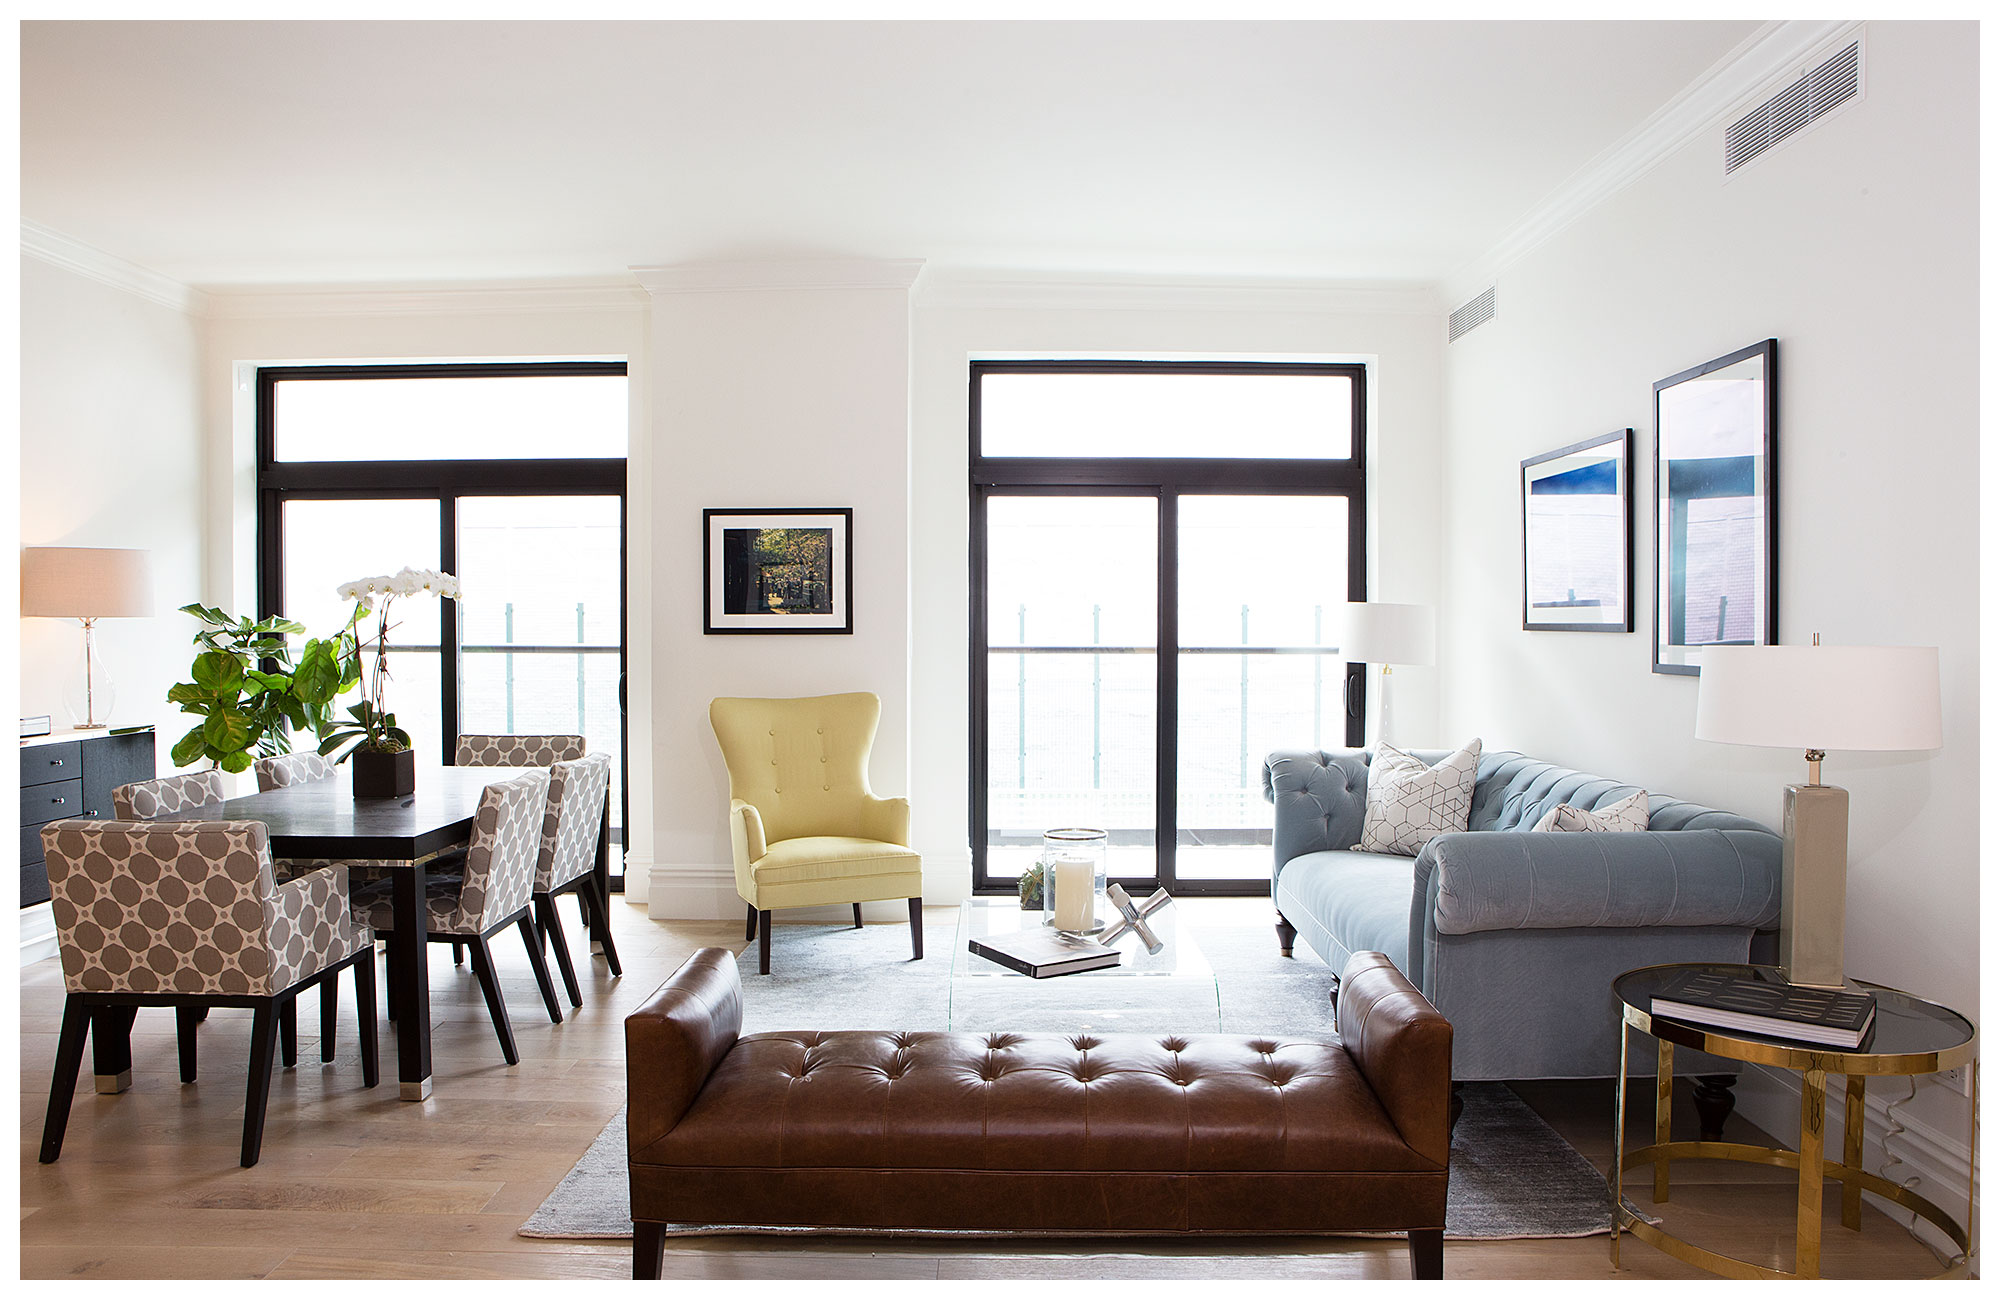 Interior | Alfa Development 199 Mott | Brian Park Photo New York | 1